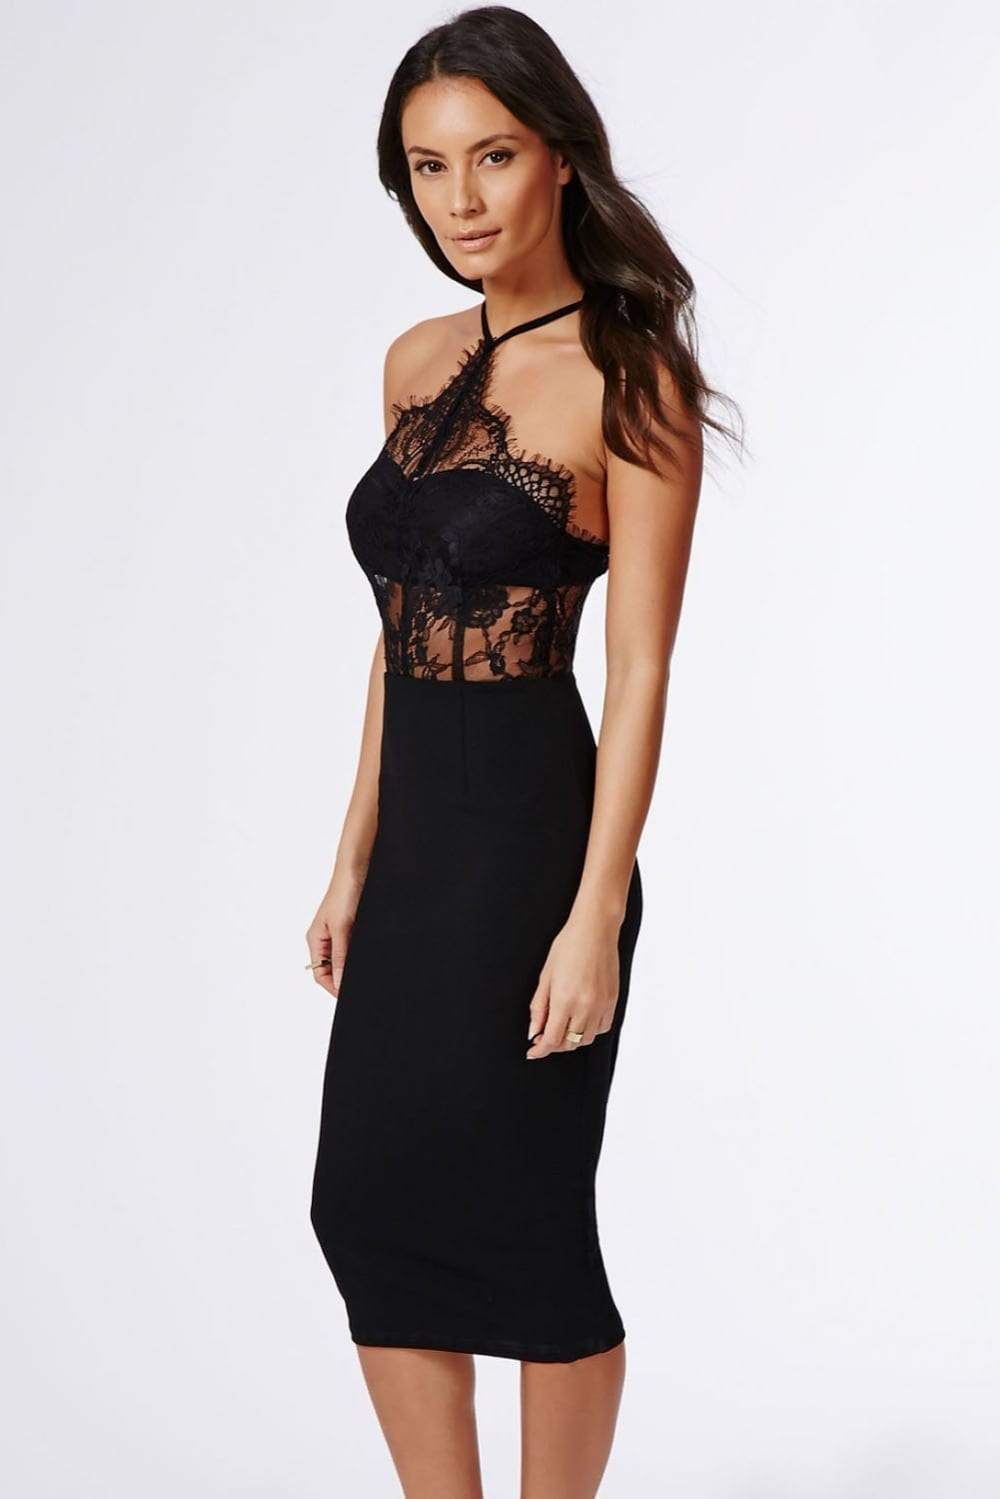 Vintage Black Halter Hollow Out Lace Inserted Sheer Fitted Midi Dress